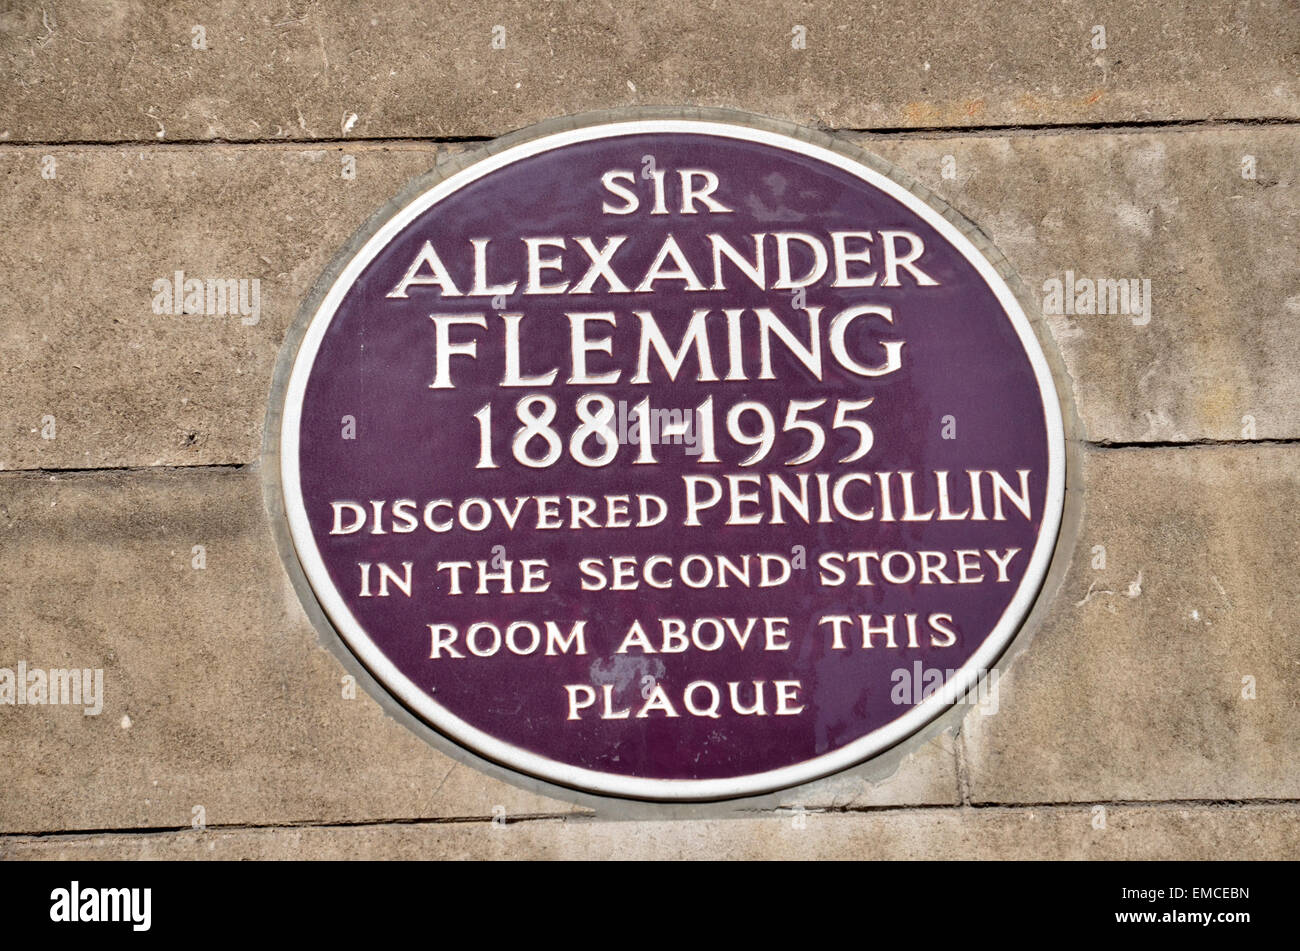 A plaque commemorating Sir Alexander Fleming discovering penicillin at St. Mary's Hospital Paddington in 1928. - Stock Image